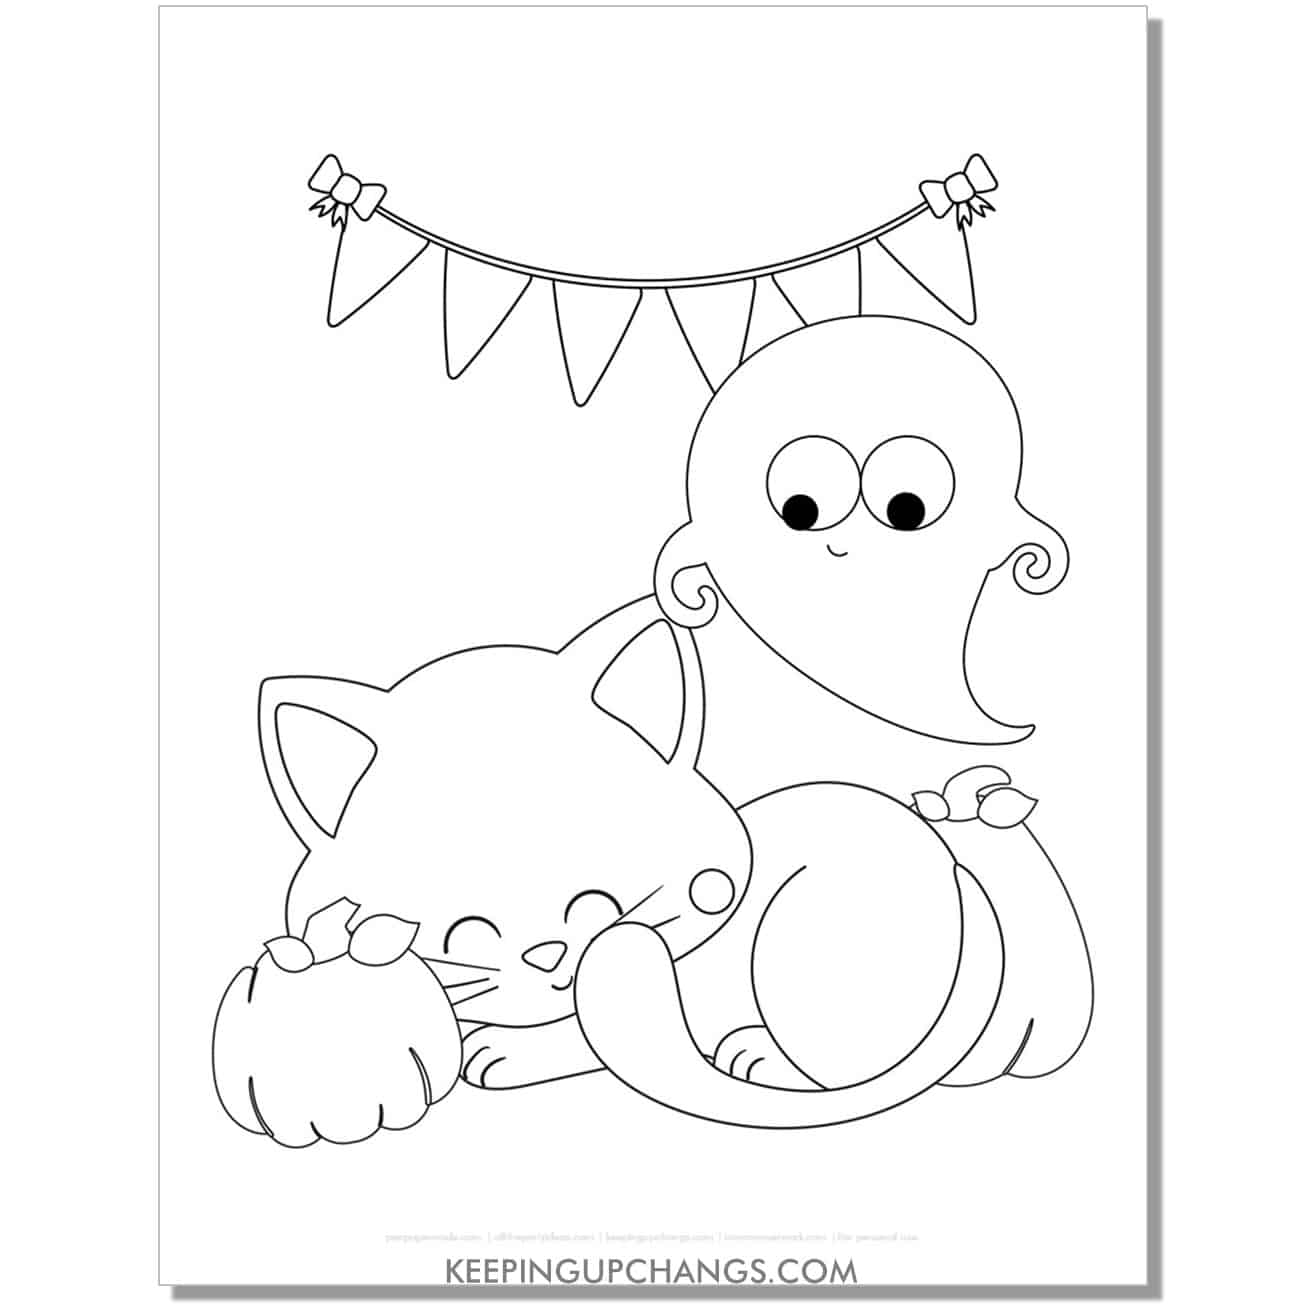 cute halloween cat with ghost and pumpkins coloring page.